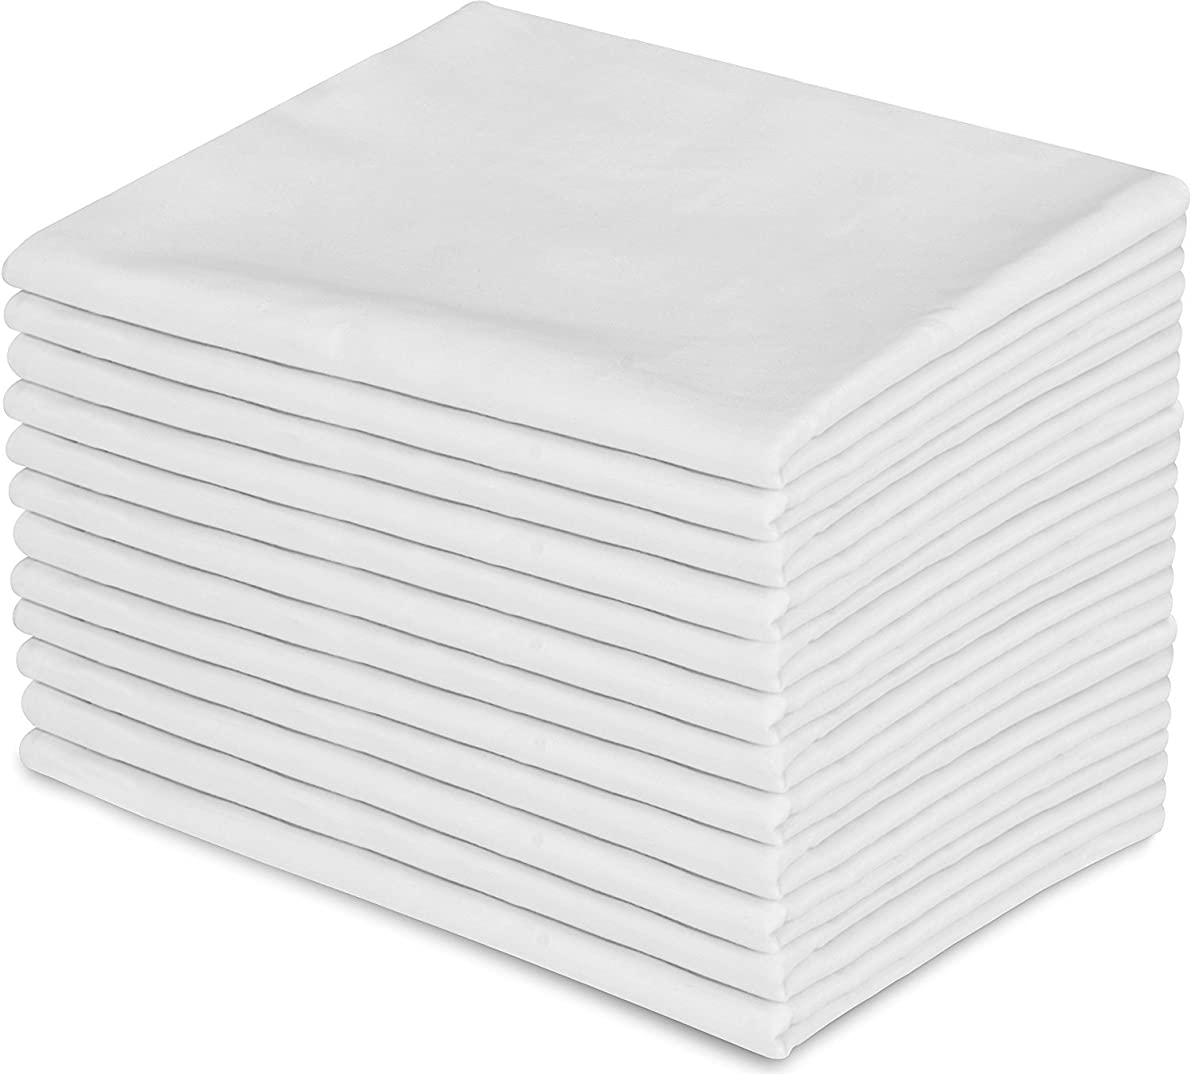 White Pillowcases, Standard Size, 42 x 34 T-180 Percale, 12-Pack (12)